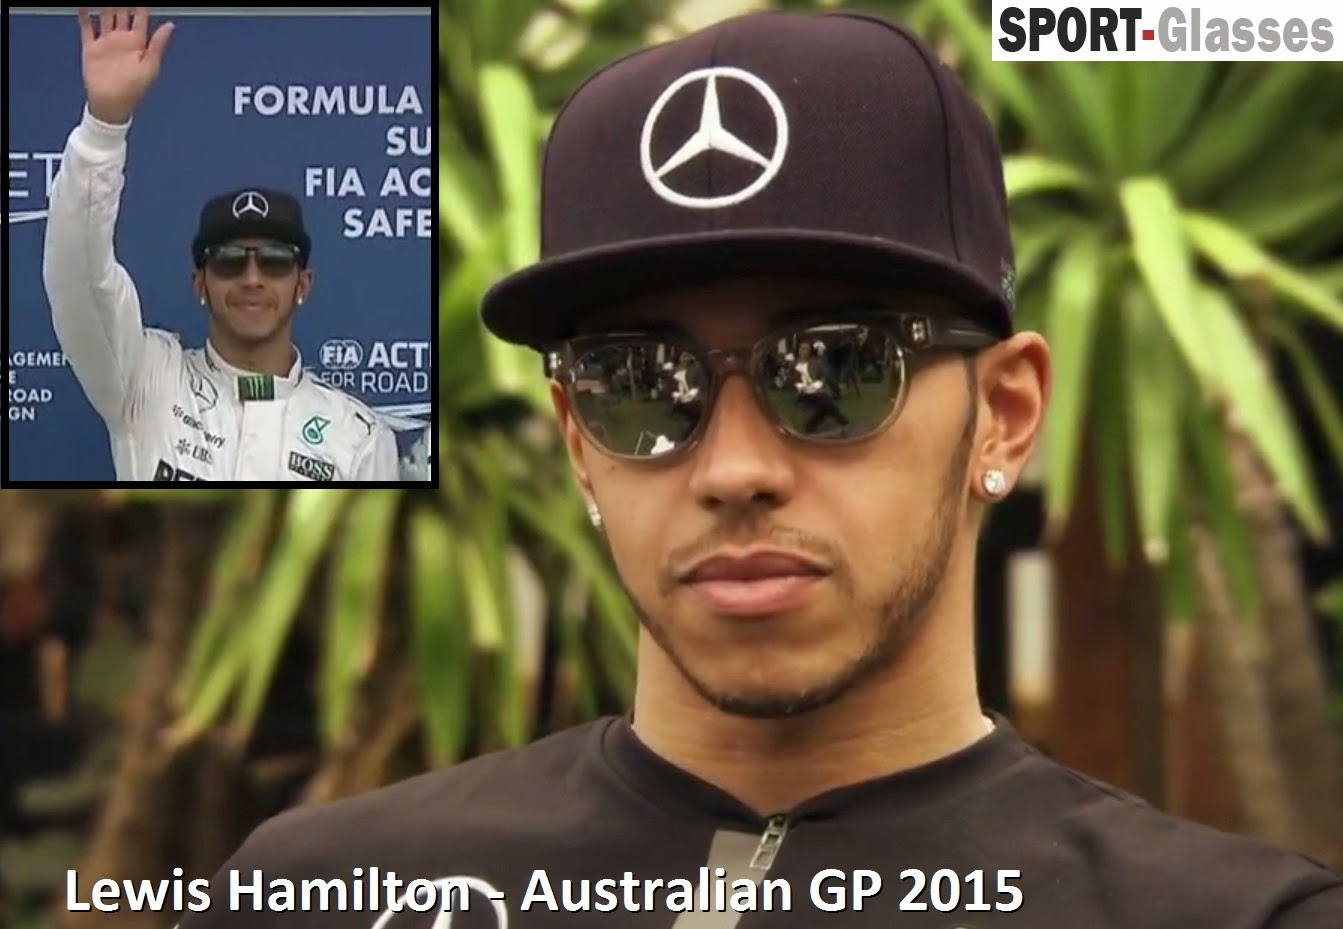 Lewis Hamilton Wearing Sunglasses at The Australian GP 2015